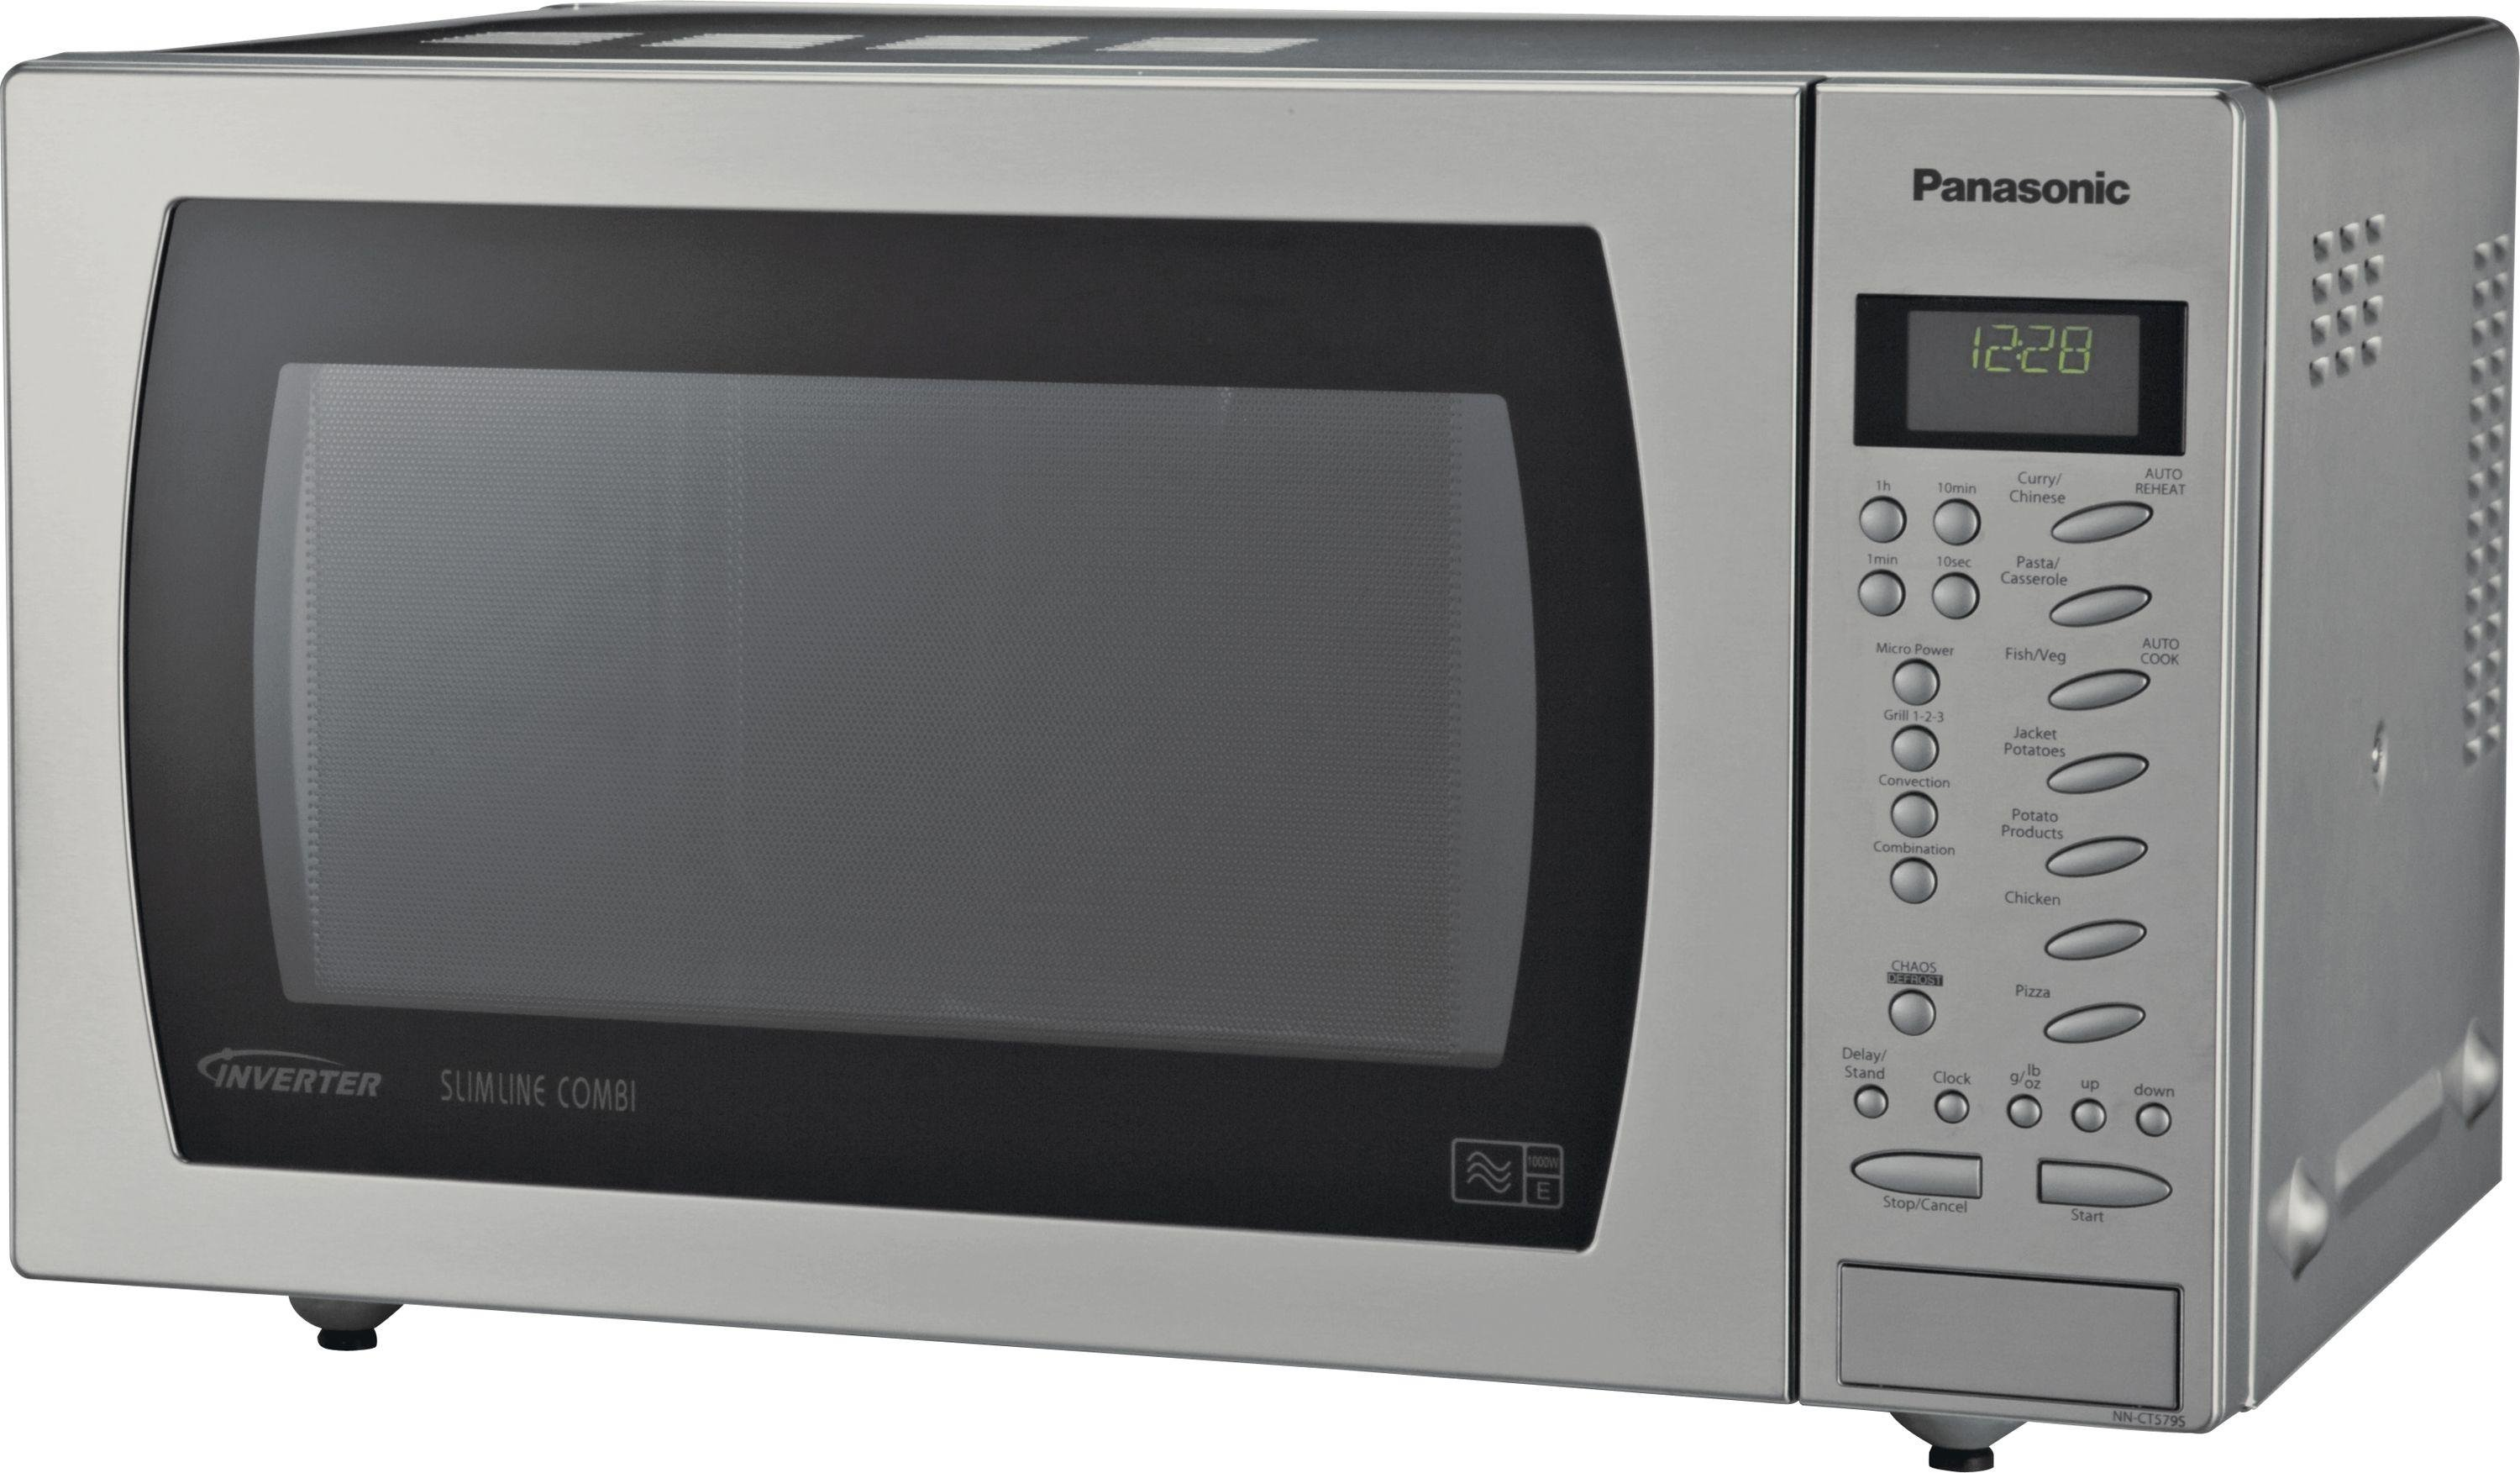 Panasonic - Combination Microwave - NN-CT585S 27L 1000W Touch Microwave -SS